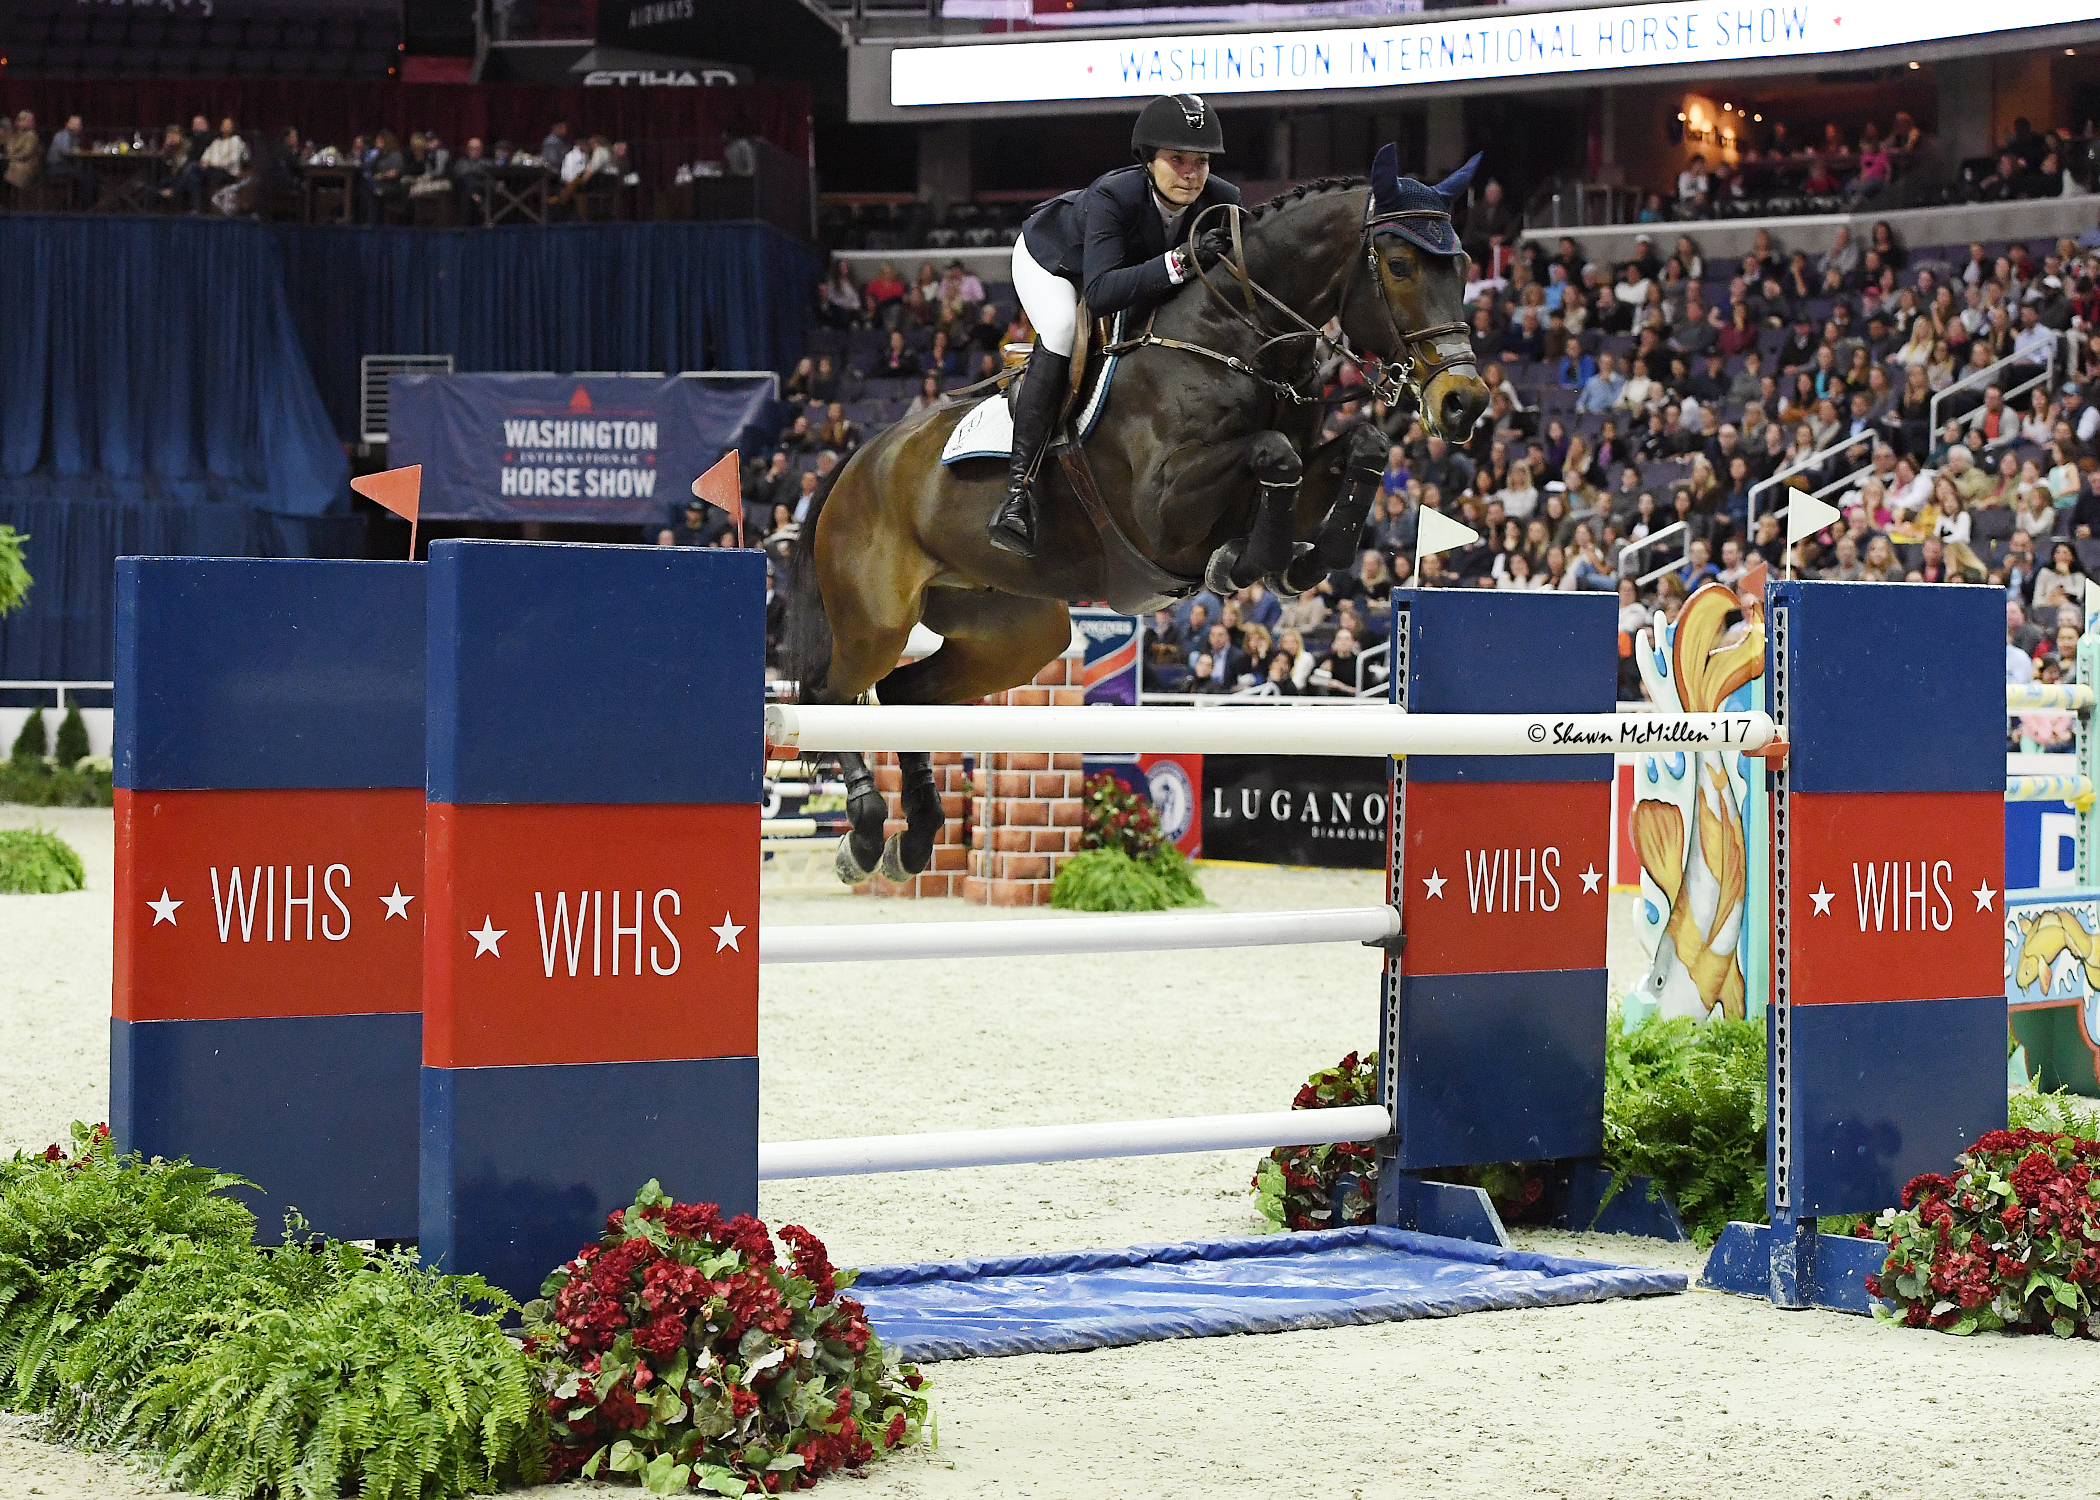 Catherine Tyree and Enjoy Louis by Shawn McMillen Photography_DSC_9225